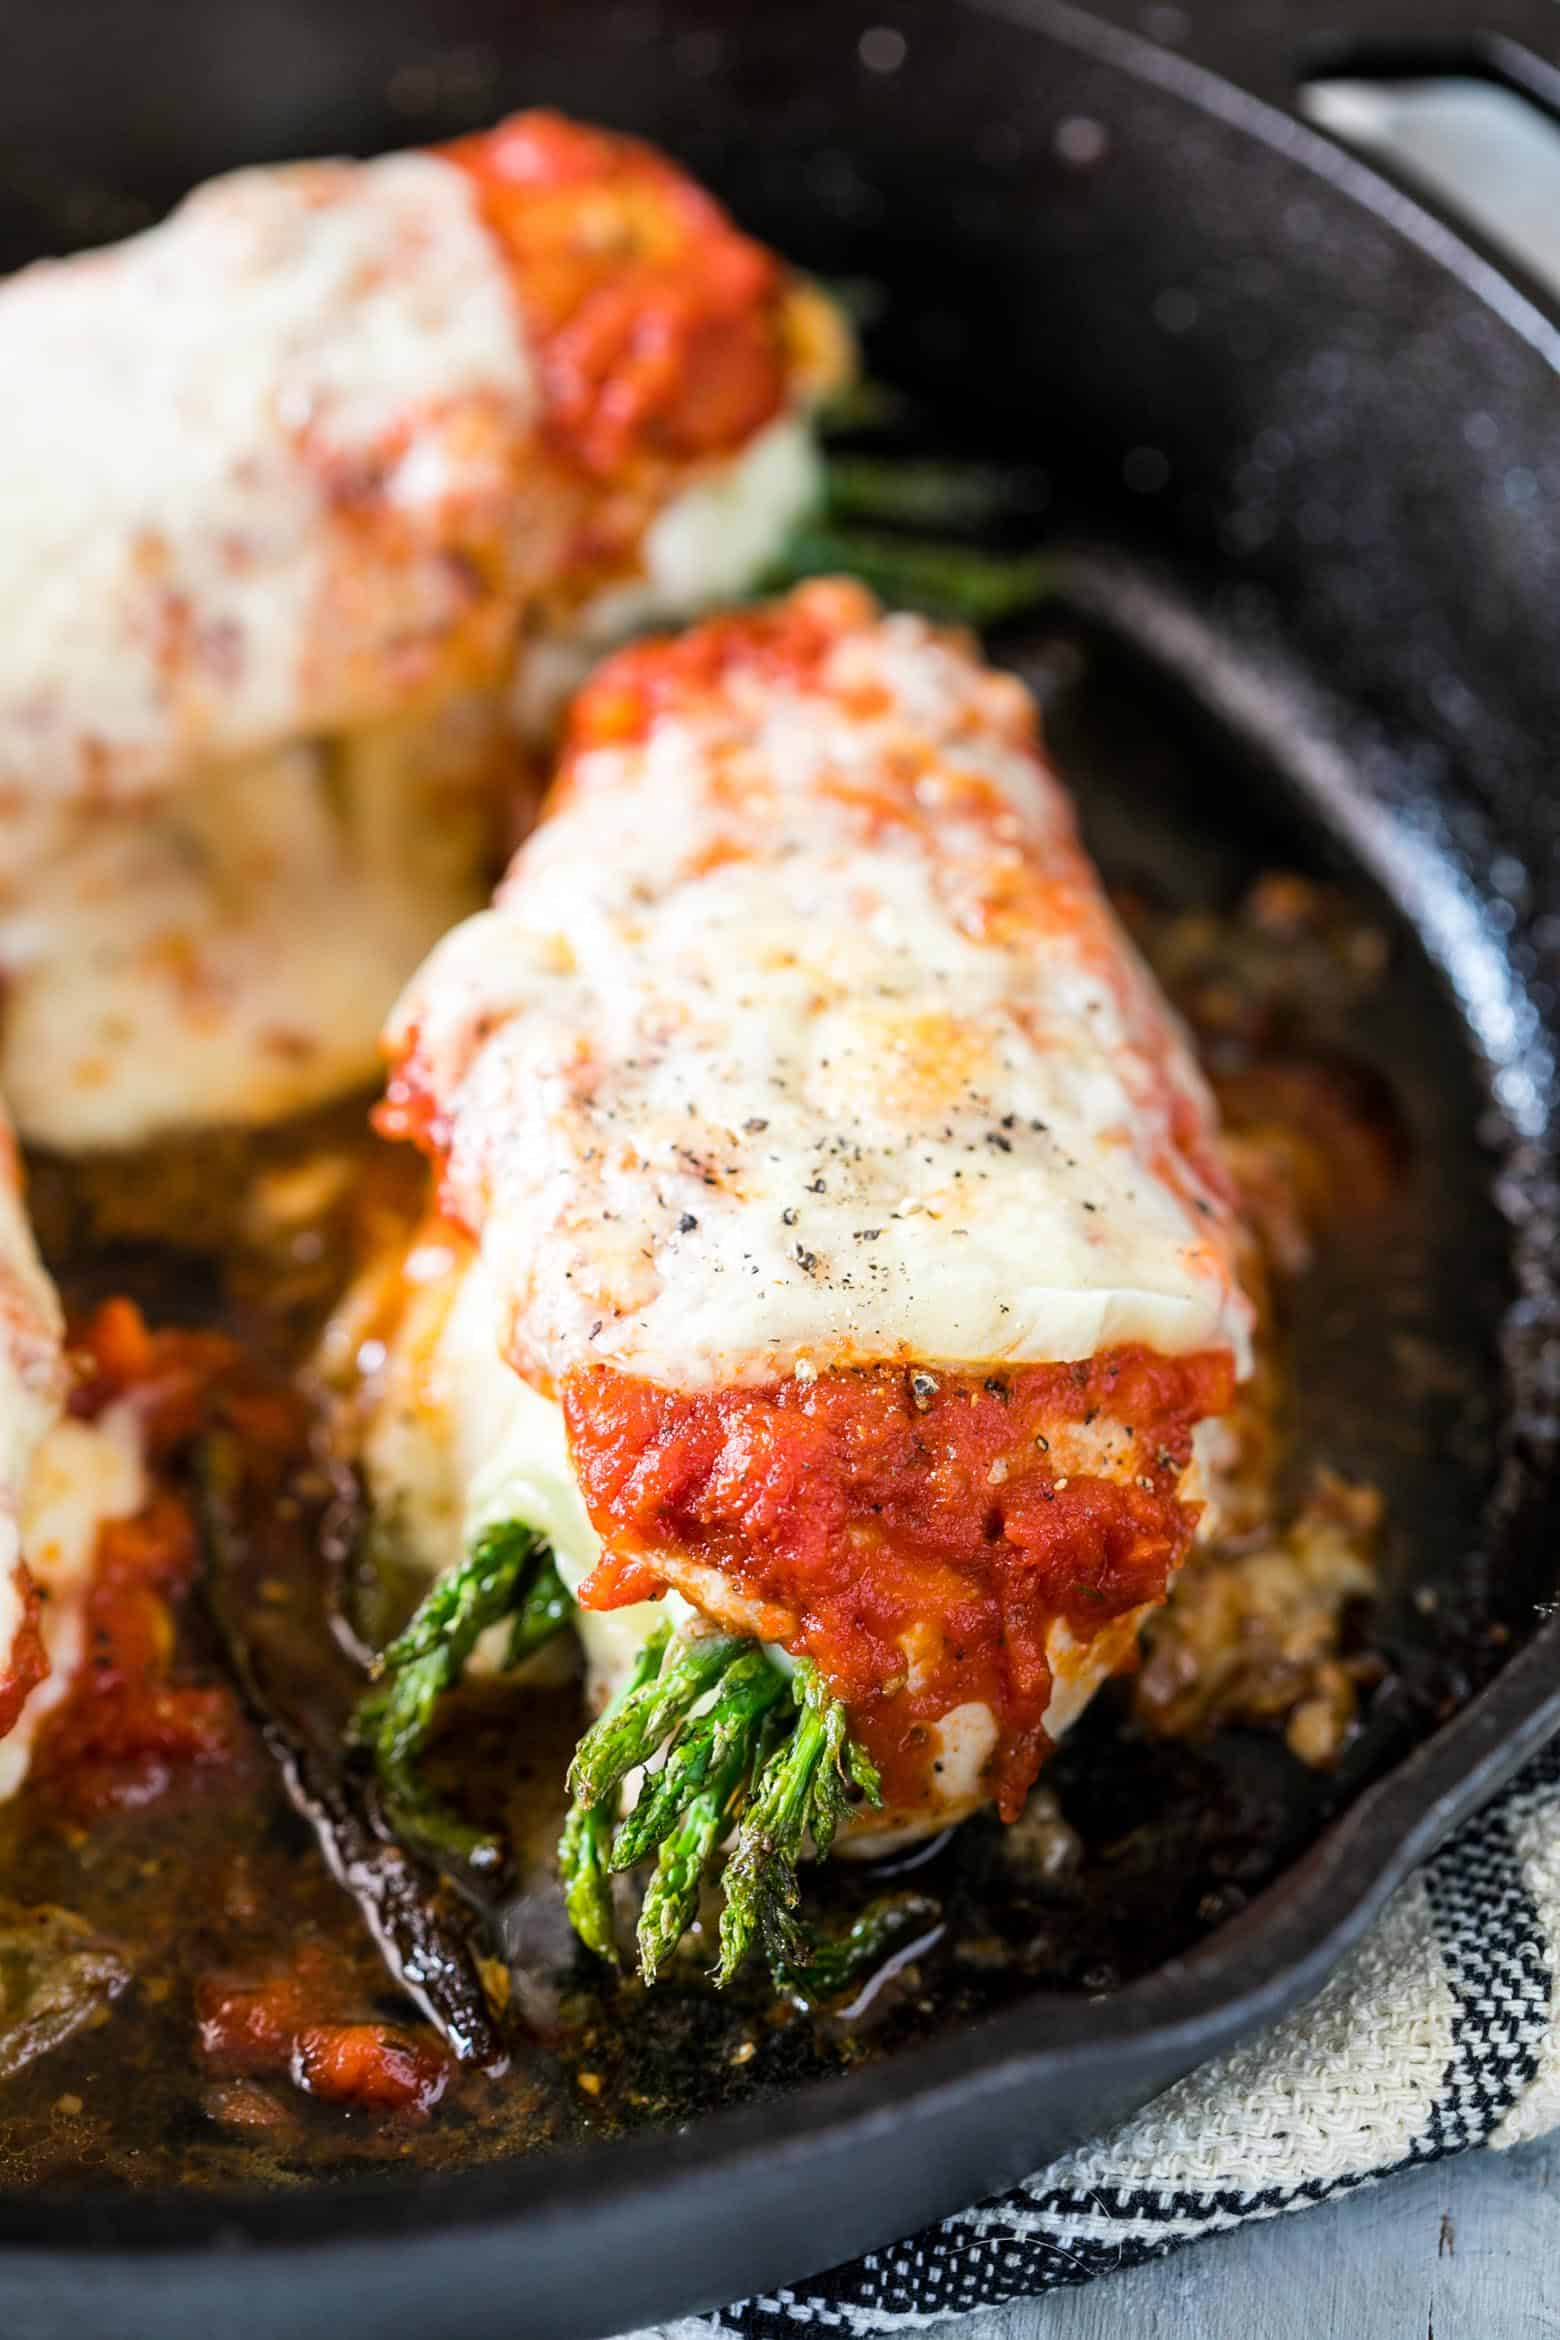 Asparagus stuffed chicken parmesan